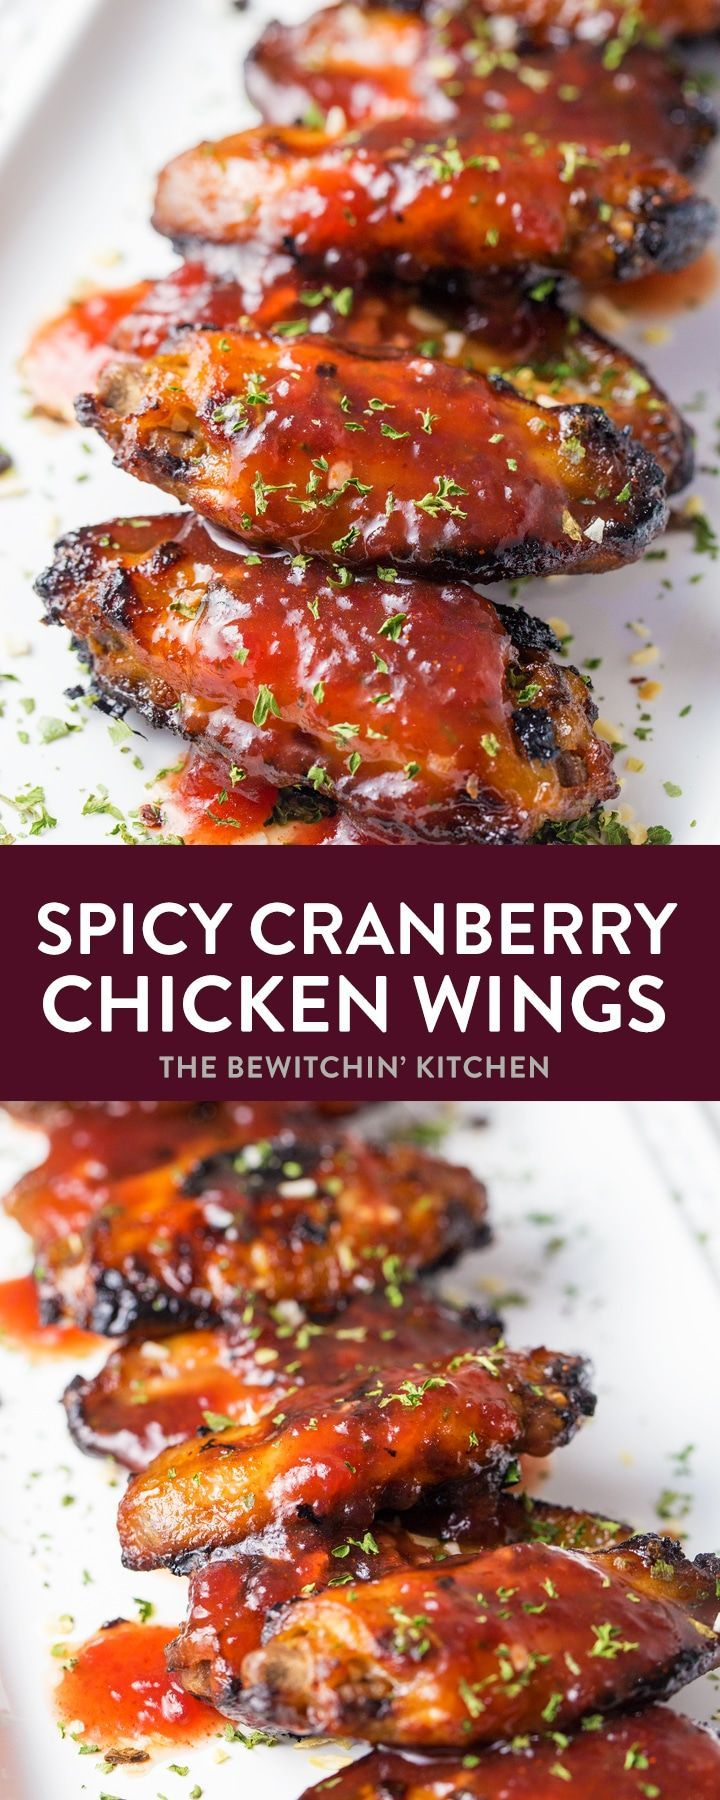 Looking for an easy appetizer recipe? Try these Spicy Cranberry Chicken Wings - hot wings with a touch of cayenne spice! Perfect for game day recipes, party appetizers, or for family & friends that love wings!!